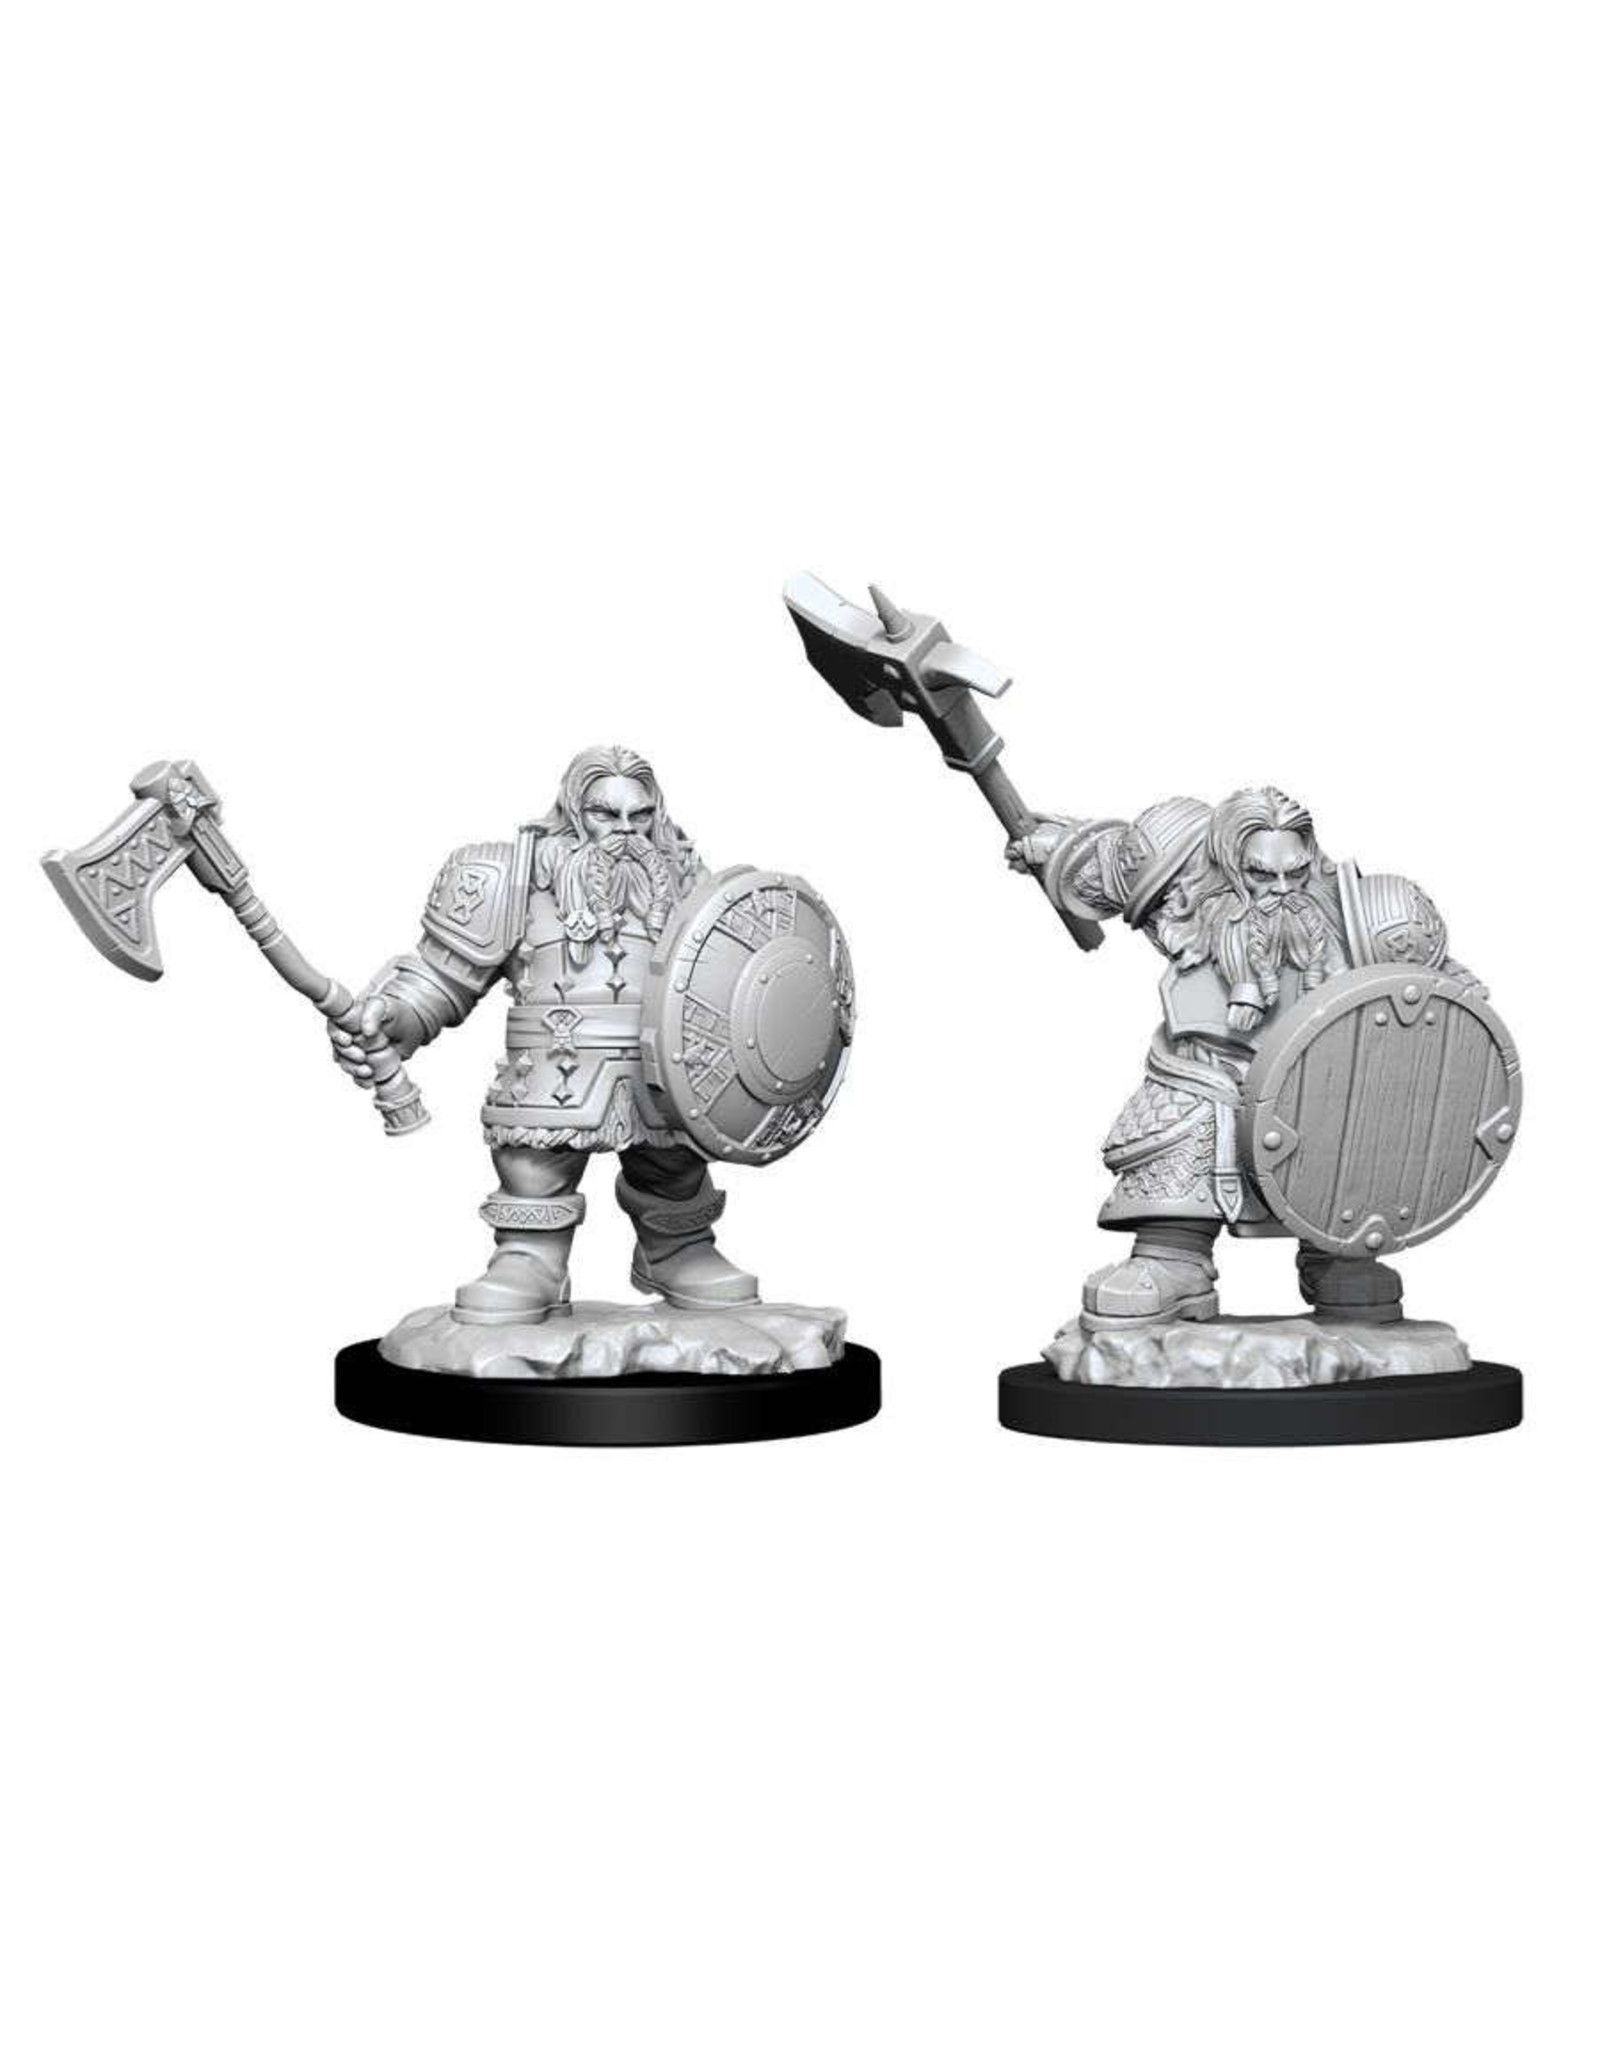 Wizkids Nolzur's Minis: W11 Male Dwarf Fighter